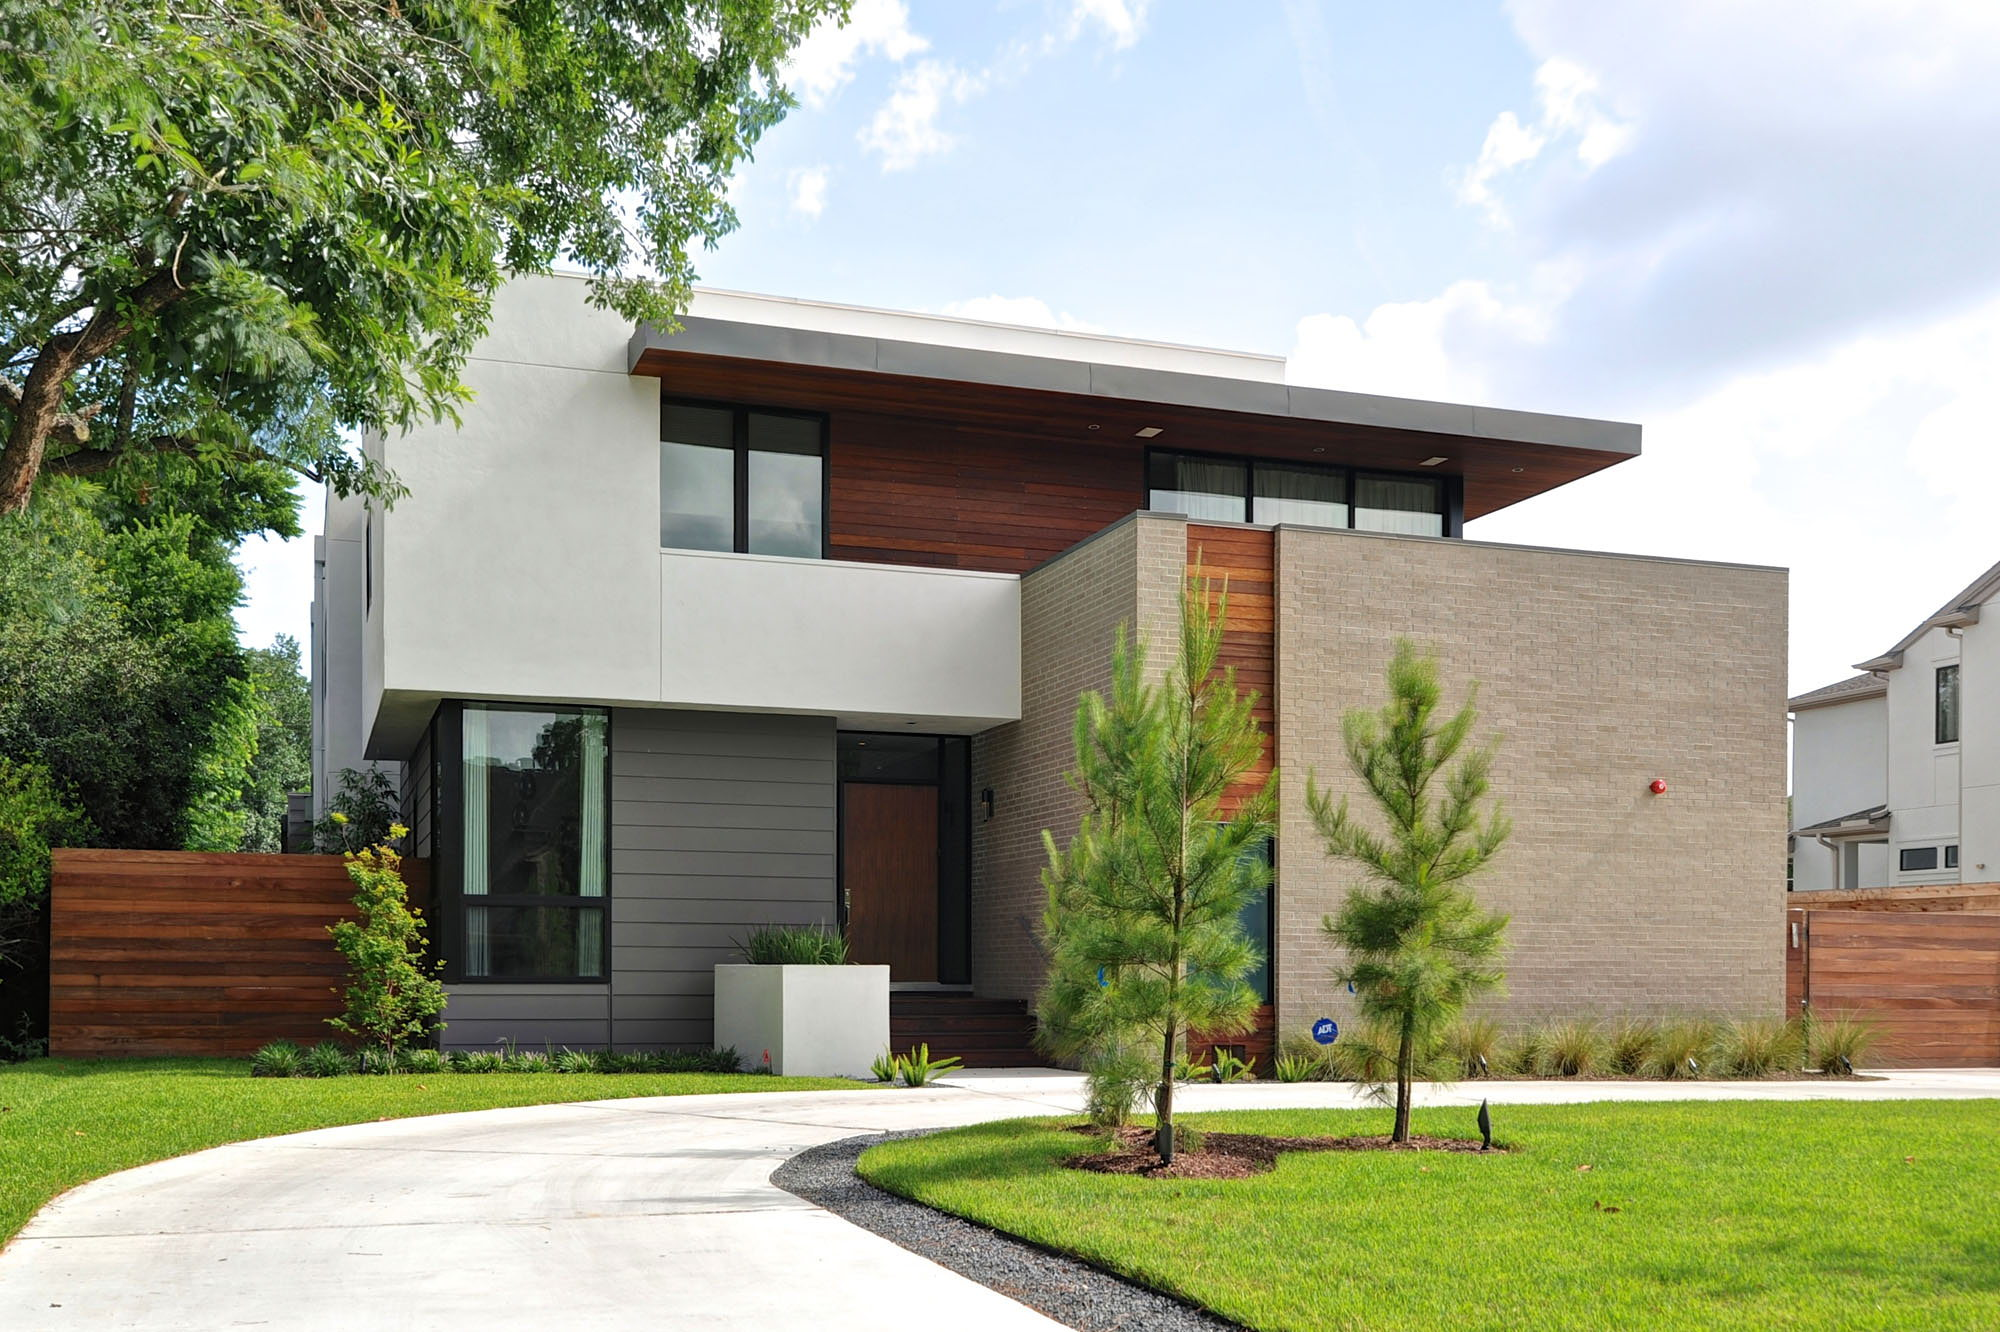 Modern house in houston from architectural firm studiomet for Contemporary home builders